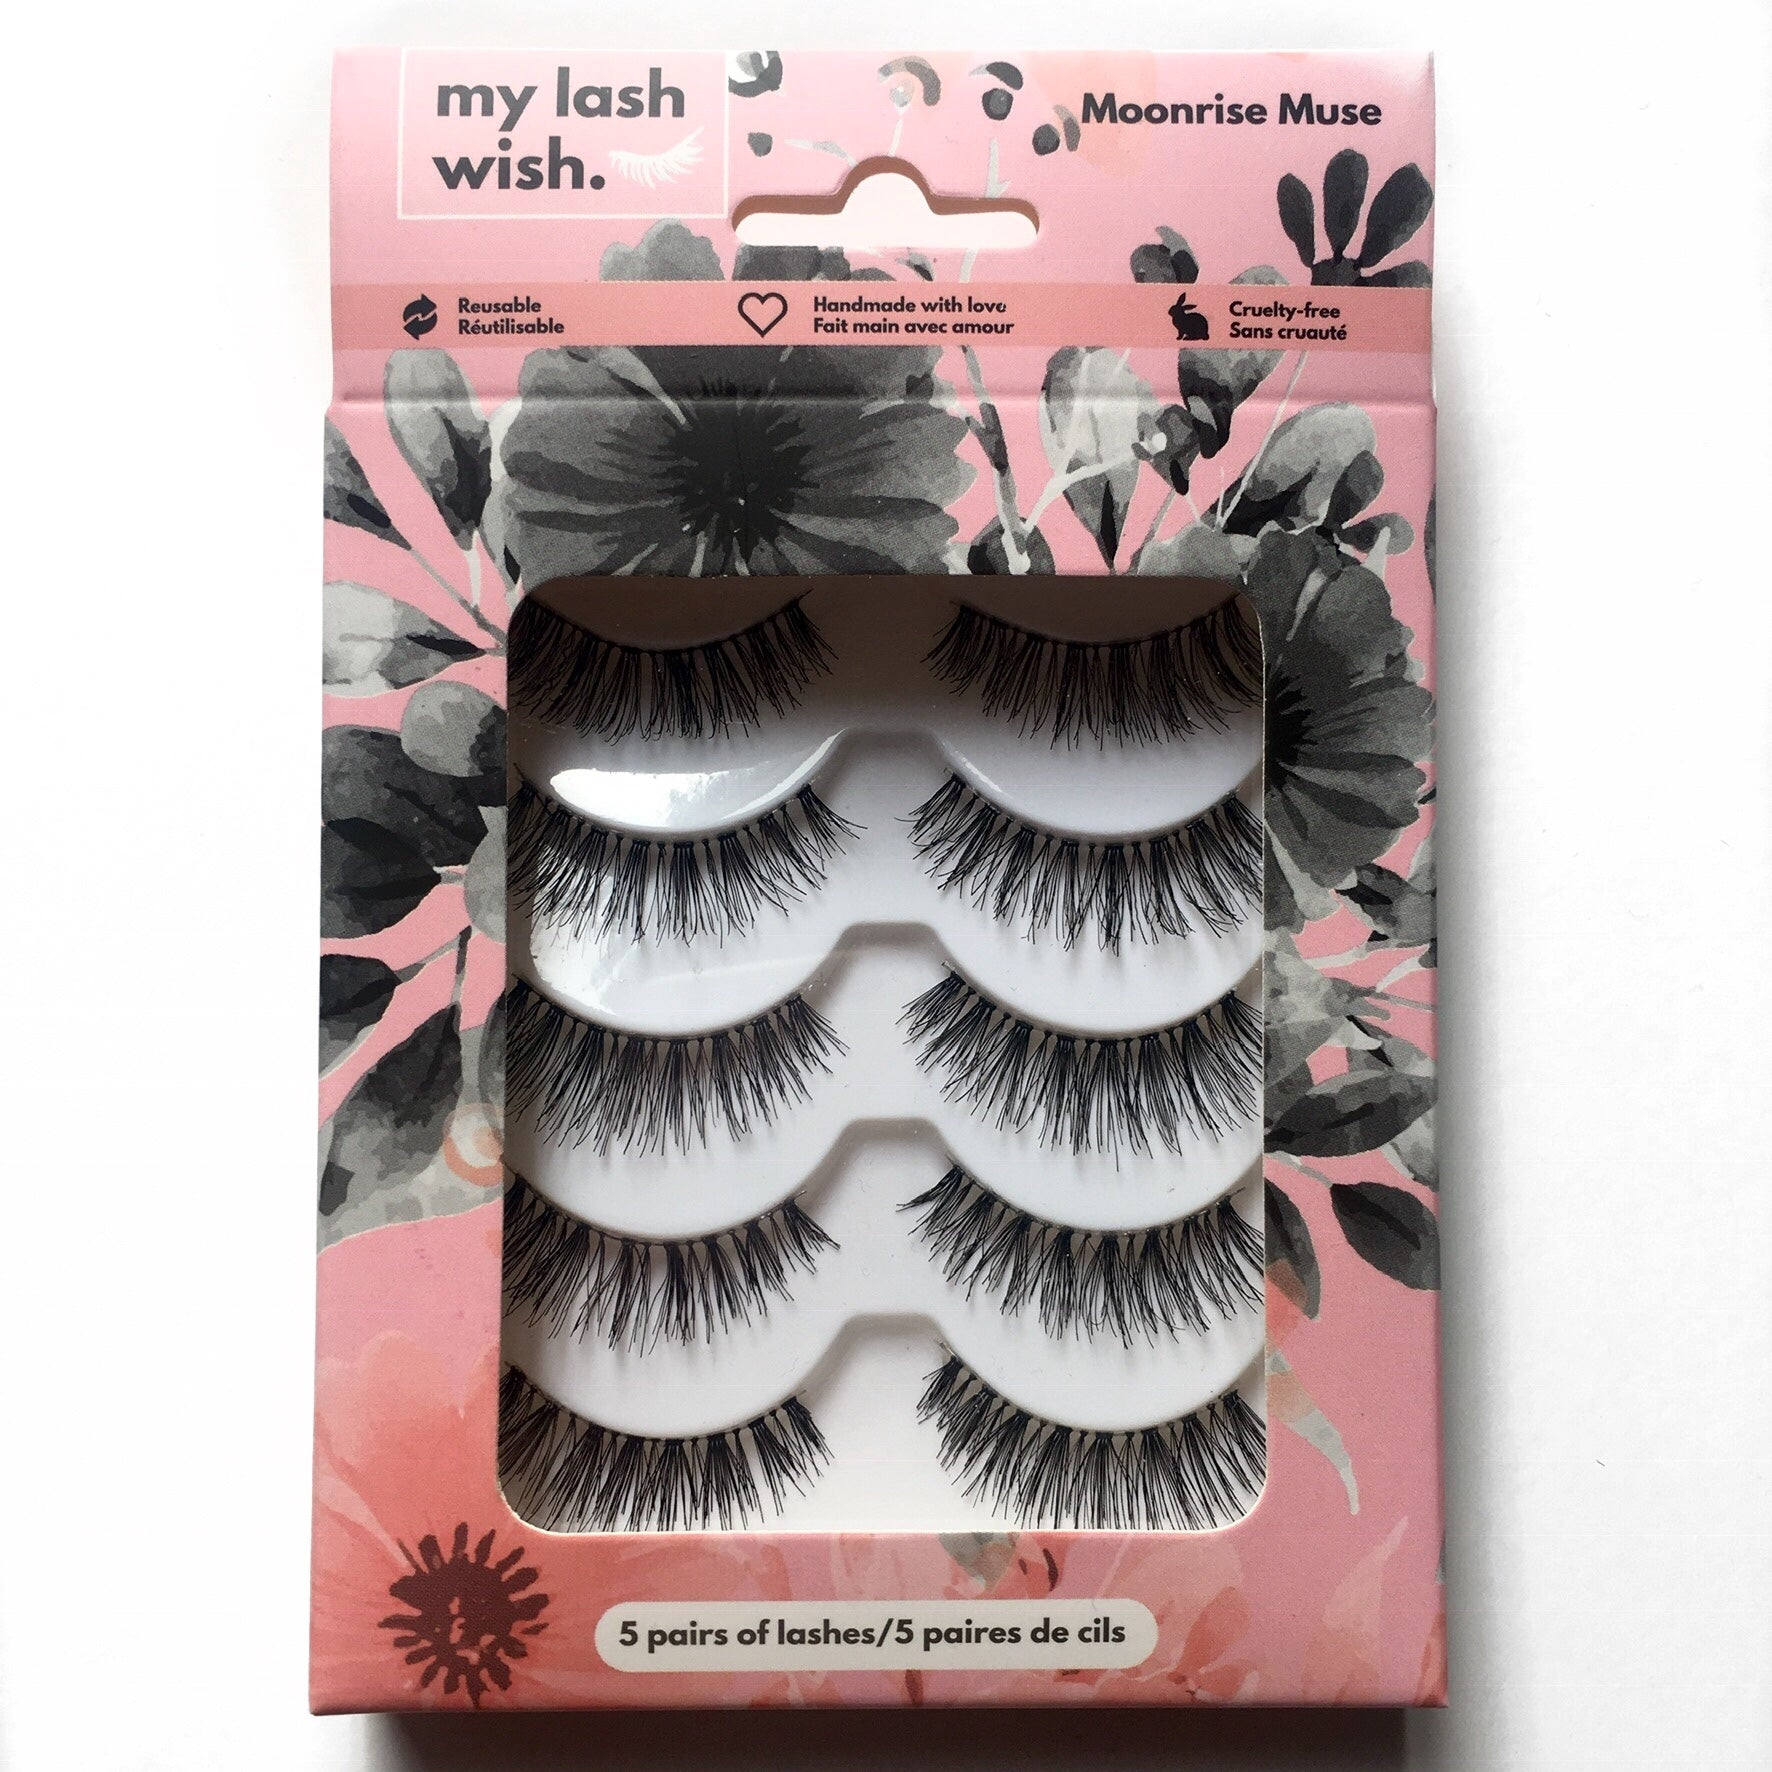 Moonrise Muse - My Lash Wish